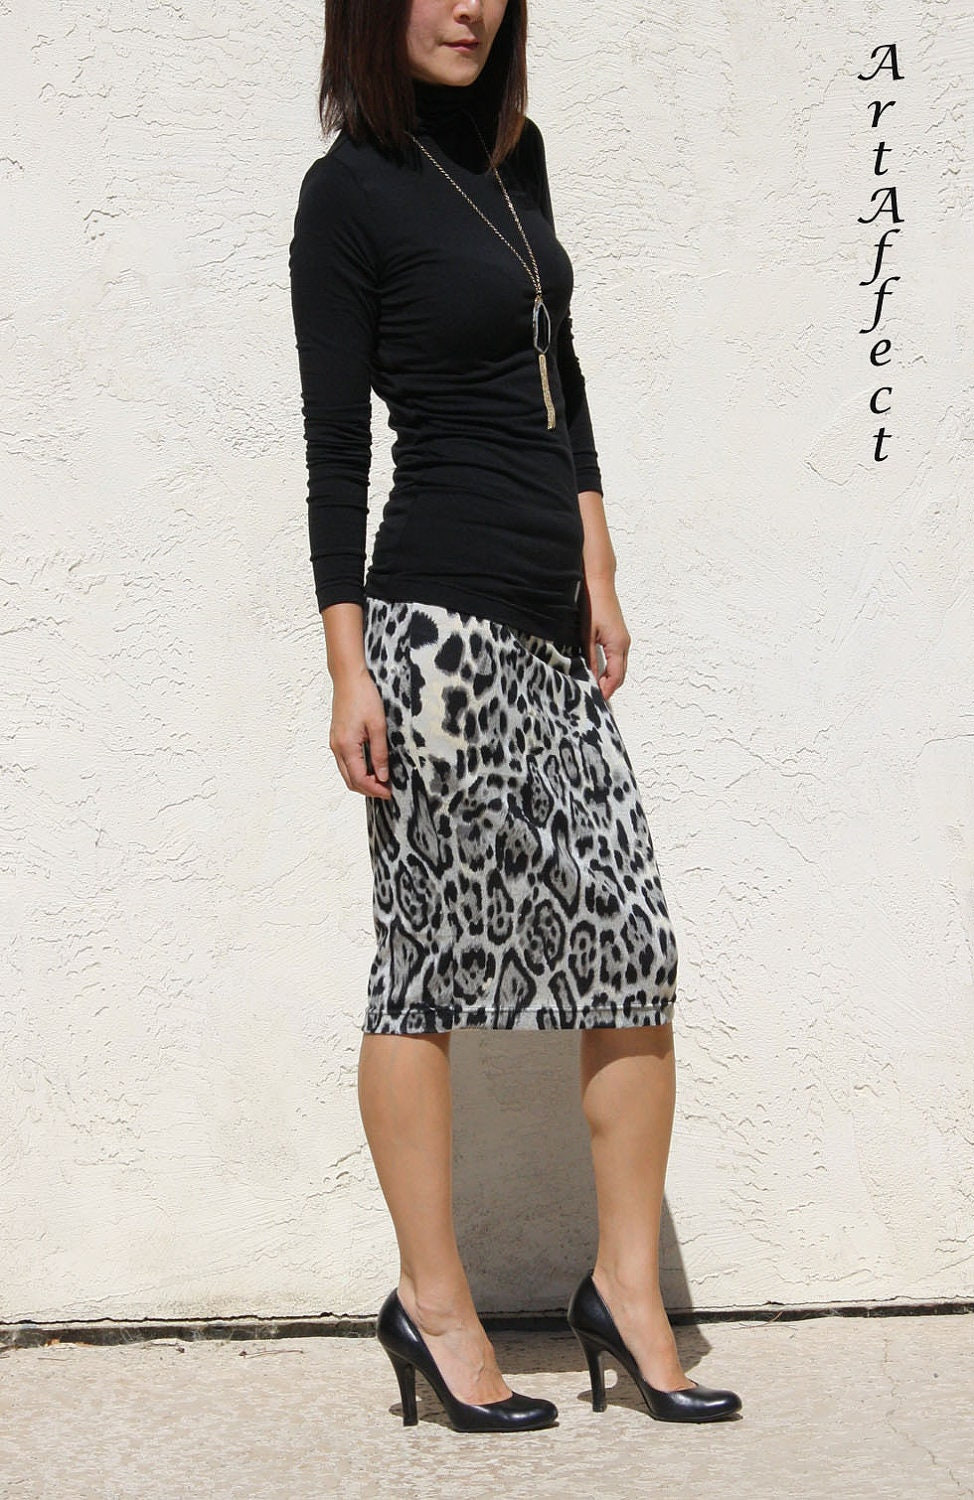 sweater knit everyday pencil skirt black and gray by artaffect